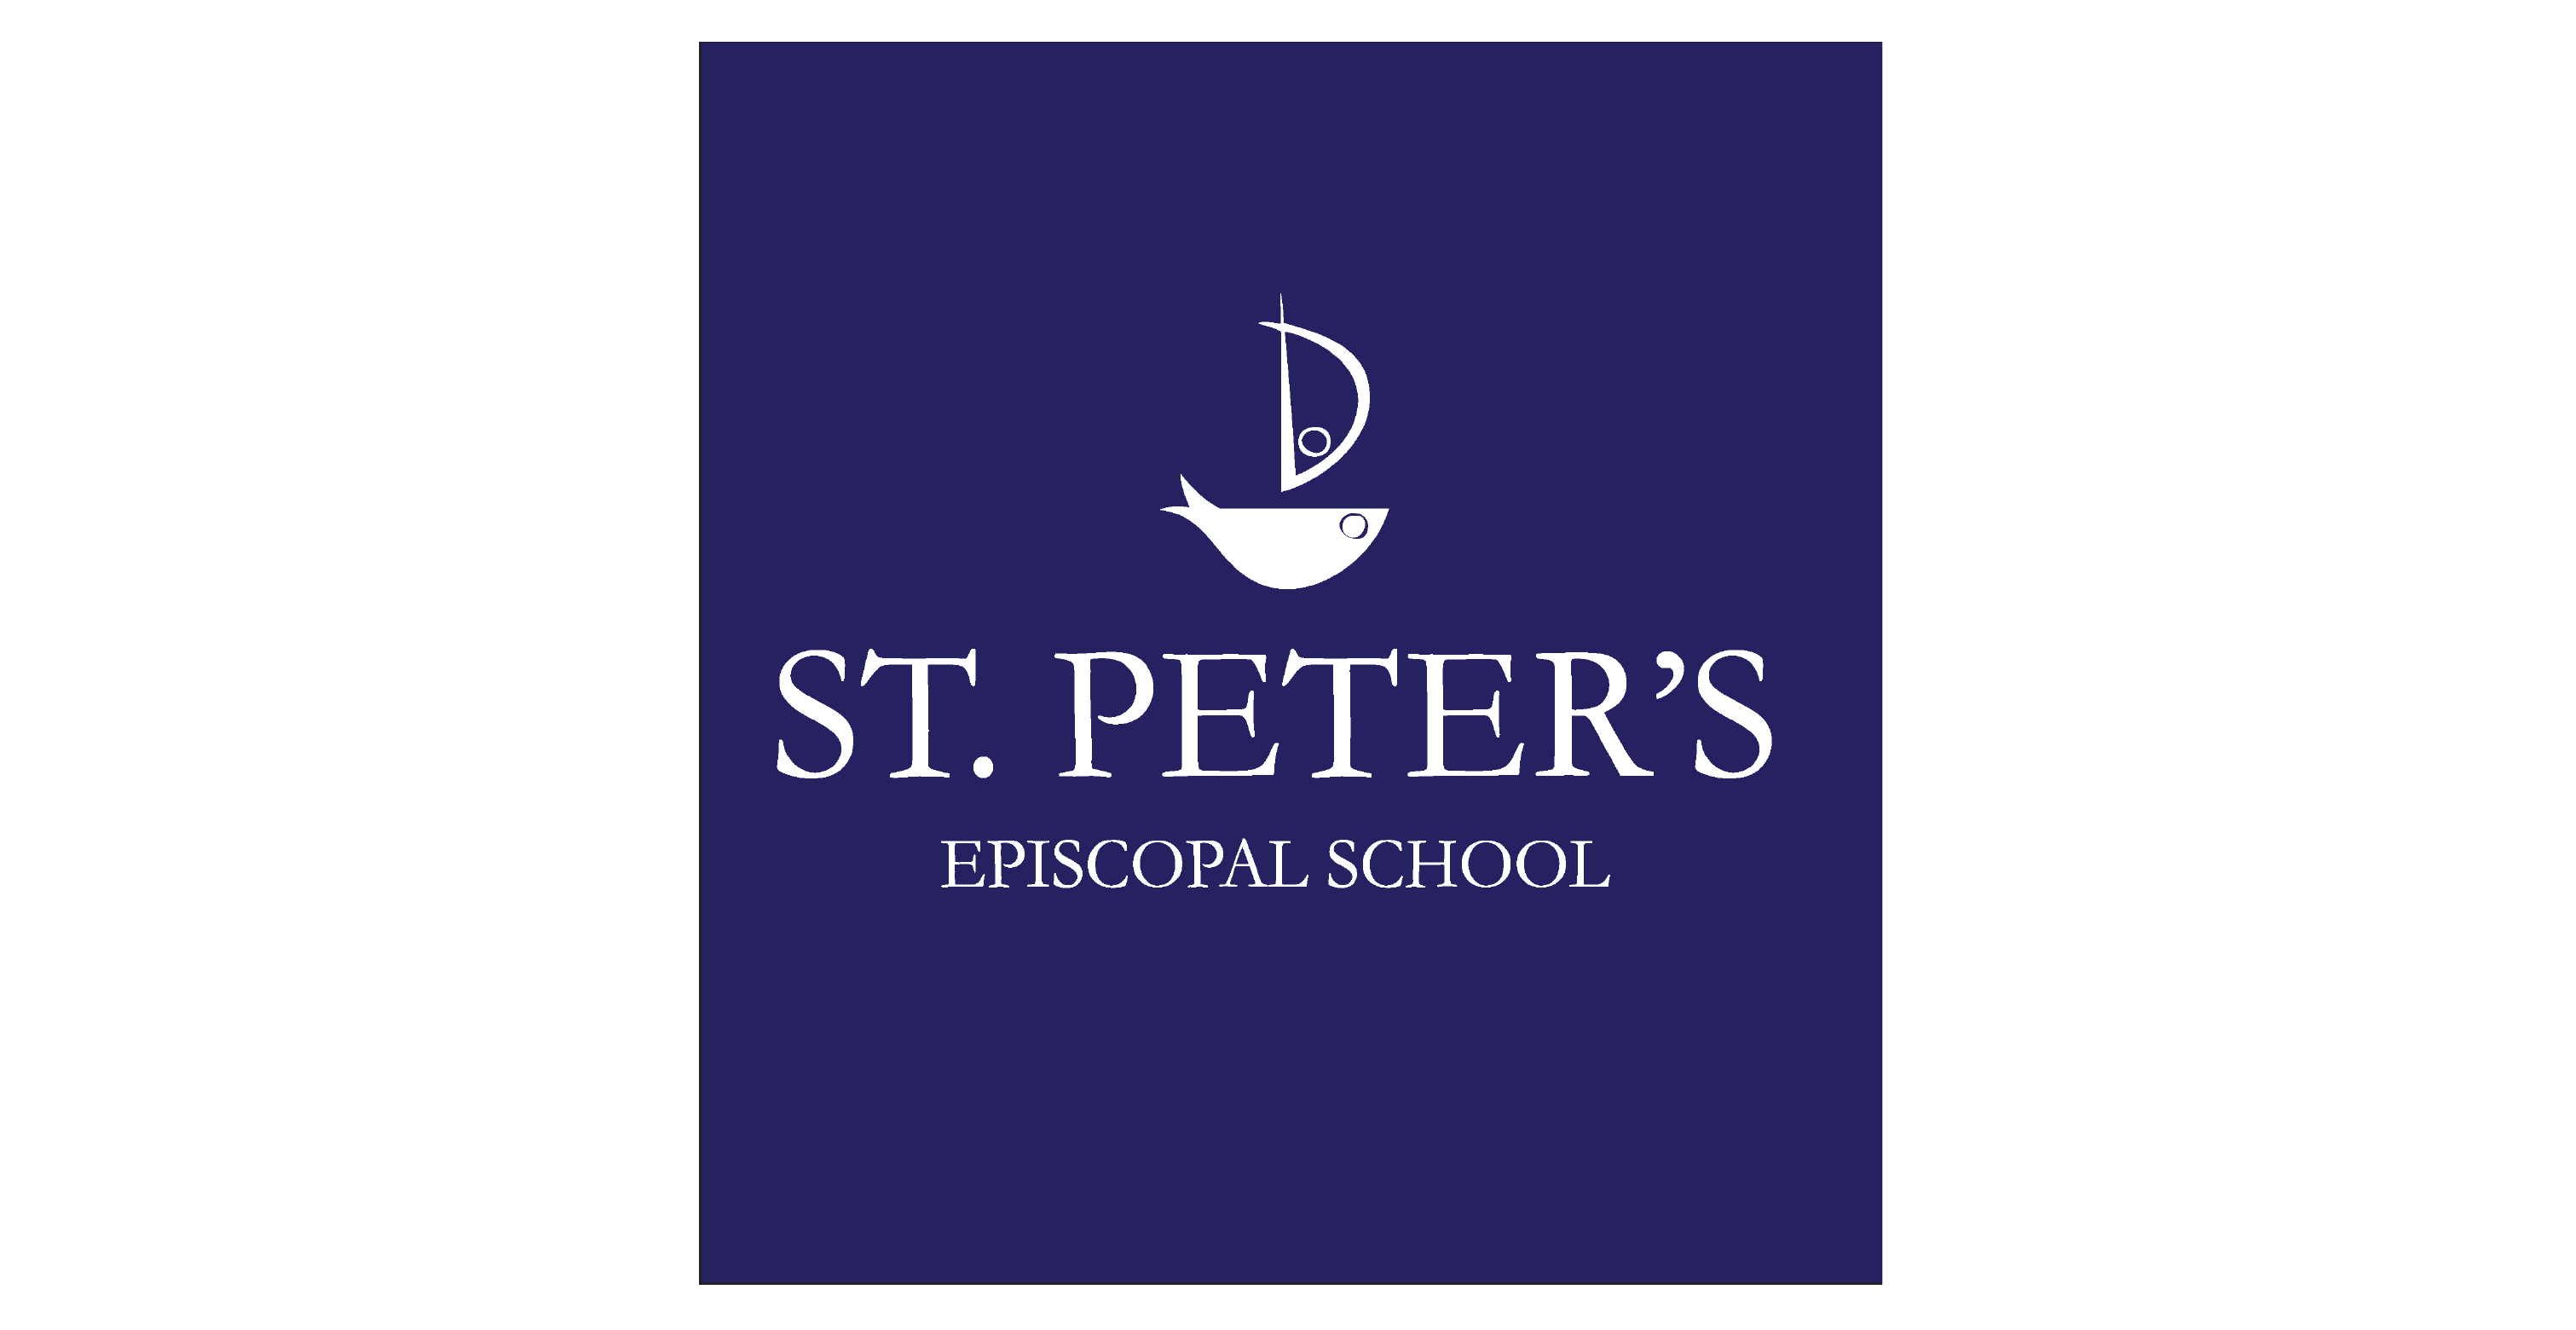 St. Peter's Episcopal School